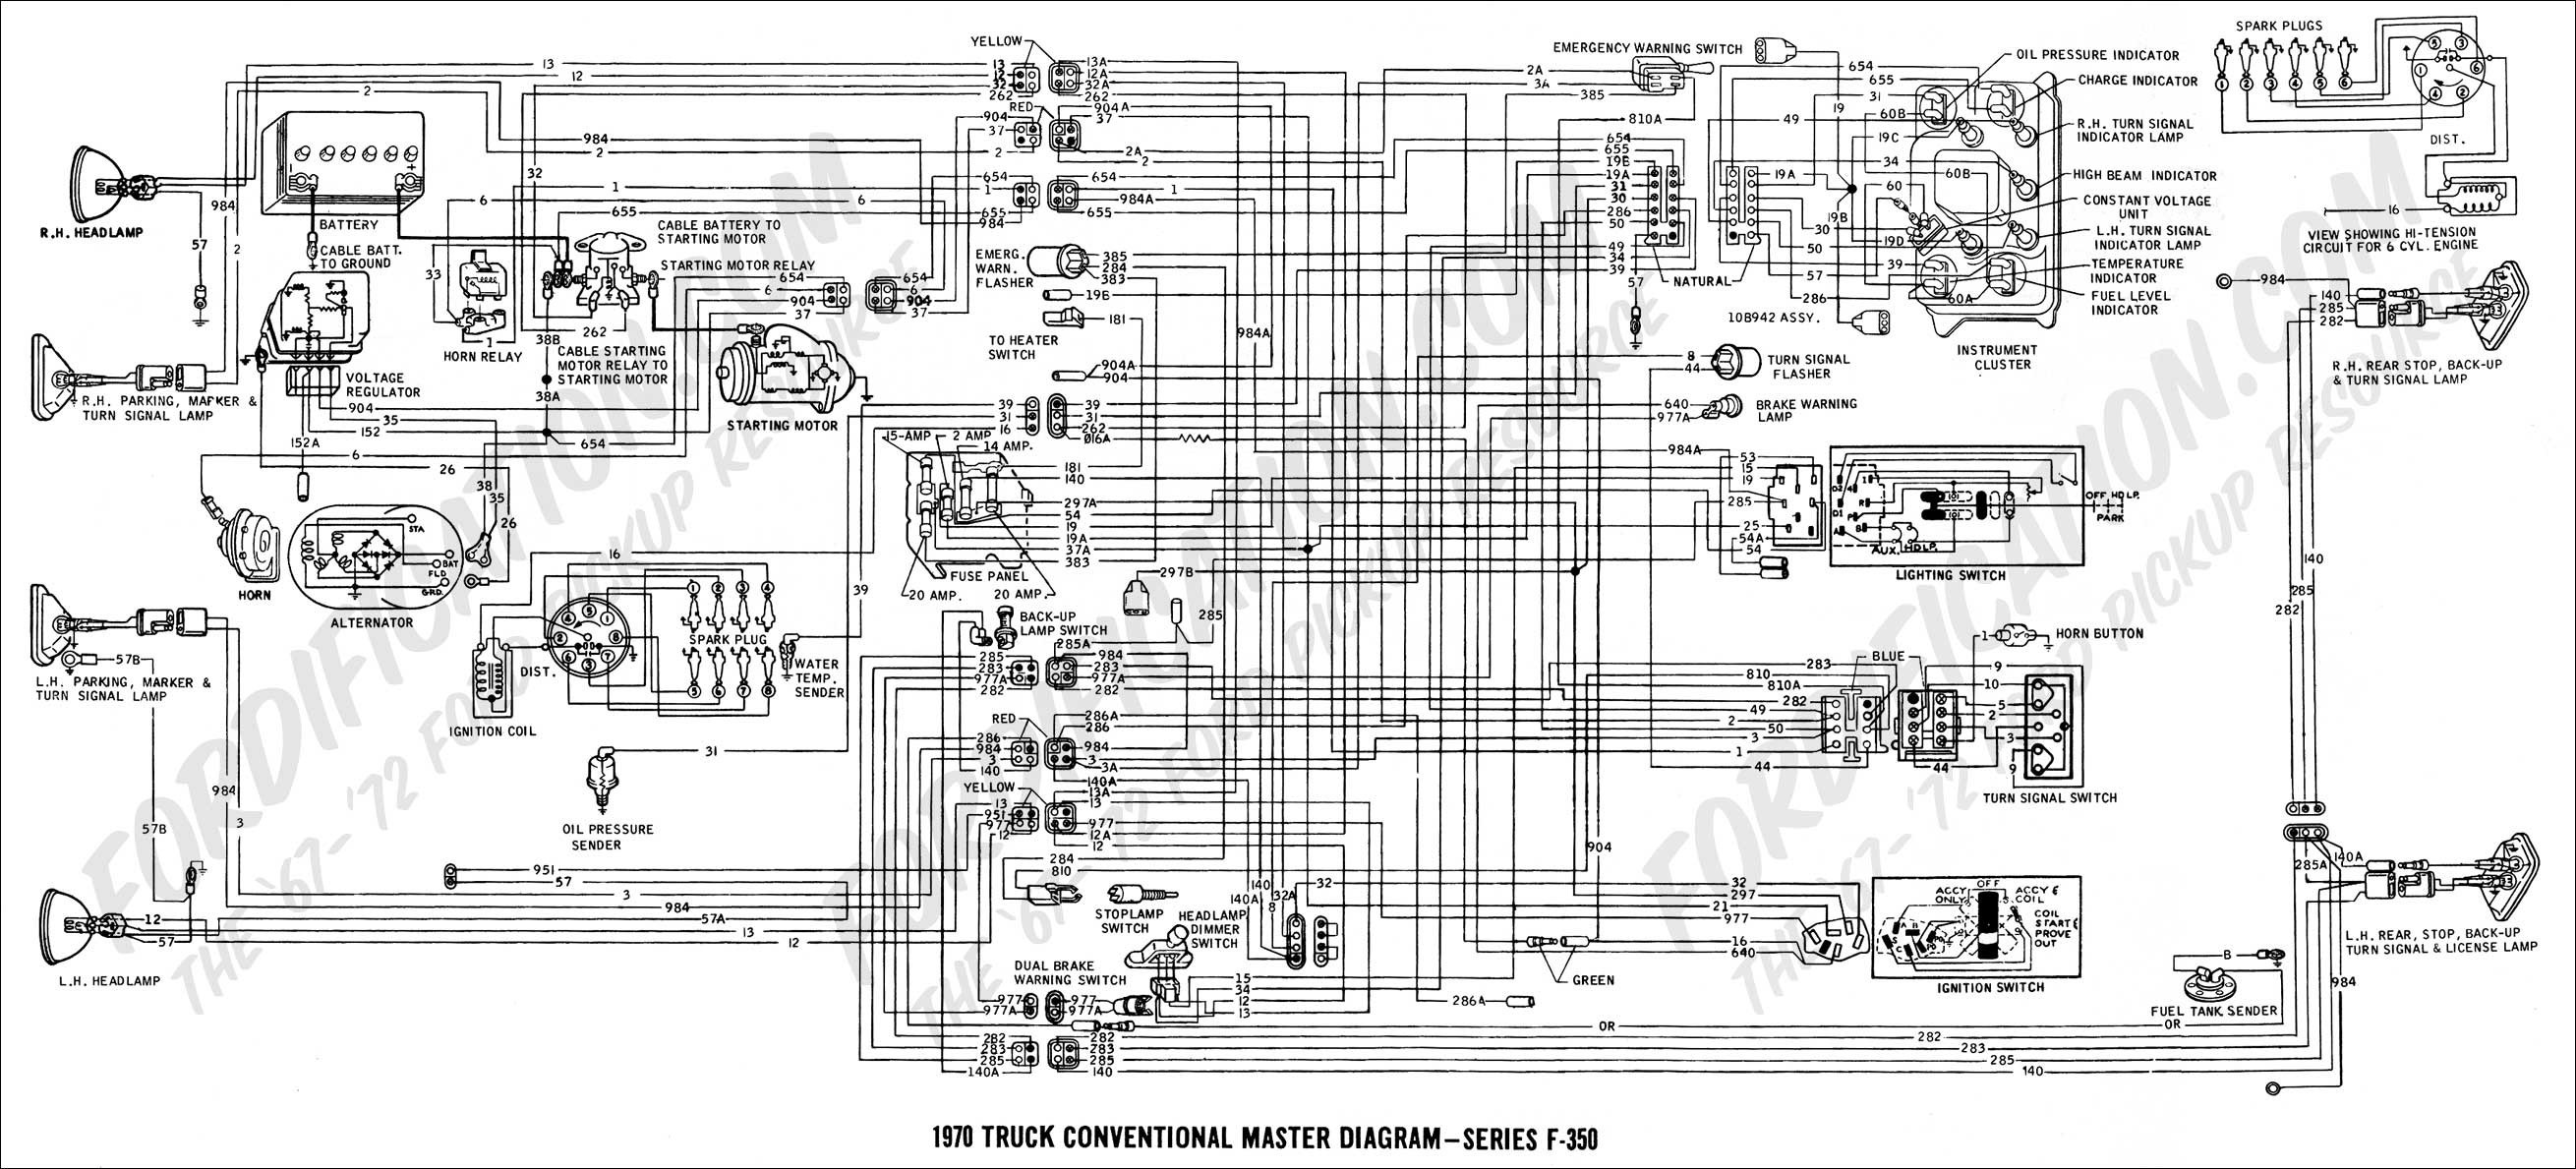 Trailer Light Harness Diagram Inspirational Wiring Diagram for Trailer Lights Diagram Of Trailer Light Harness Diagram